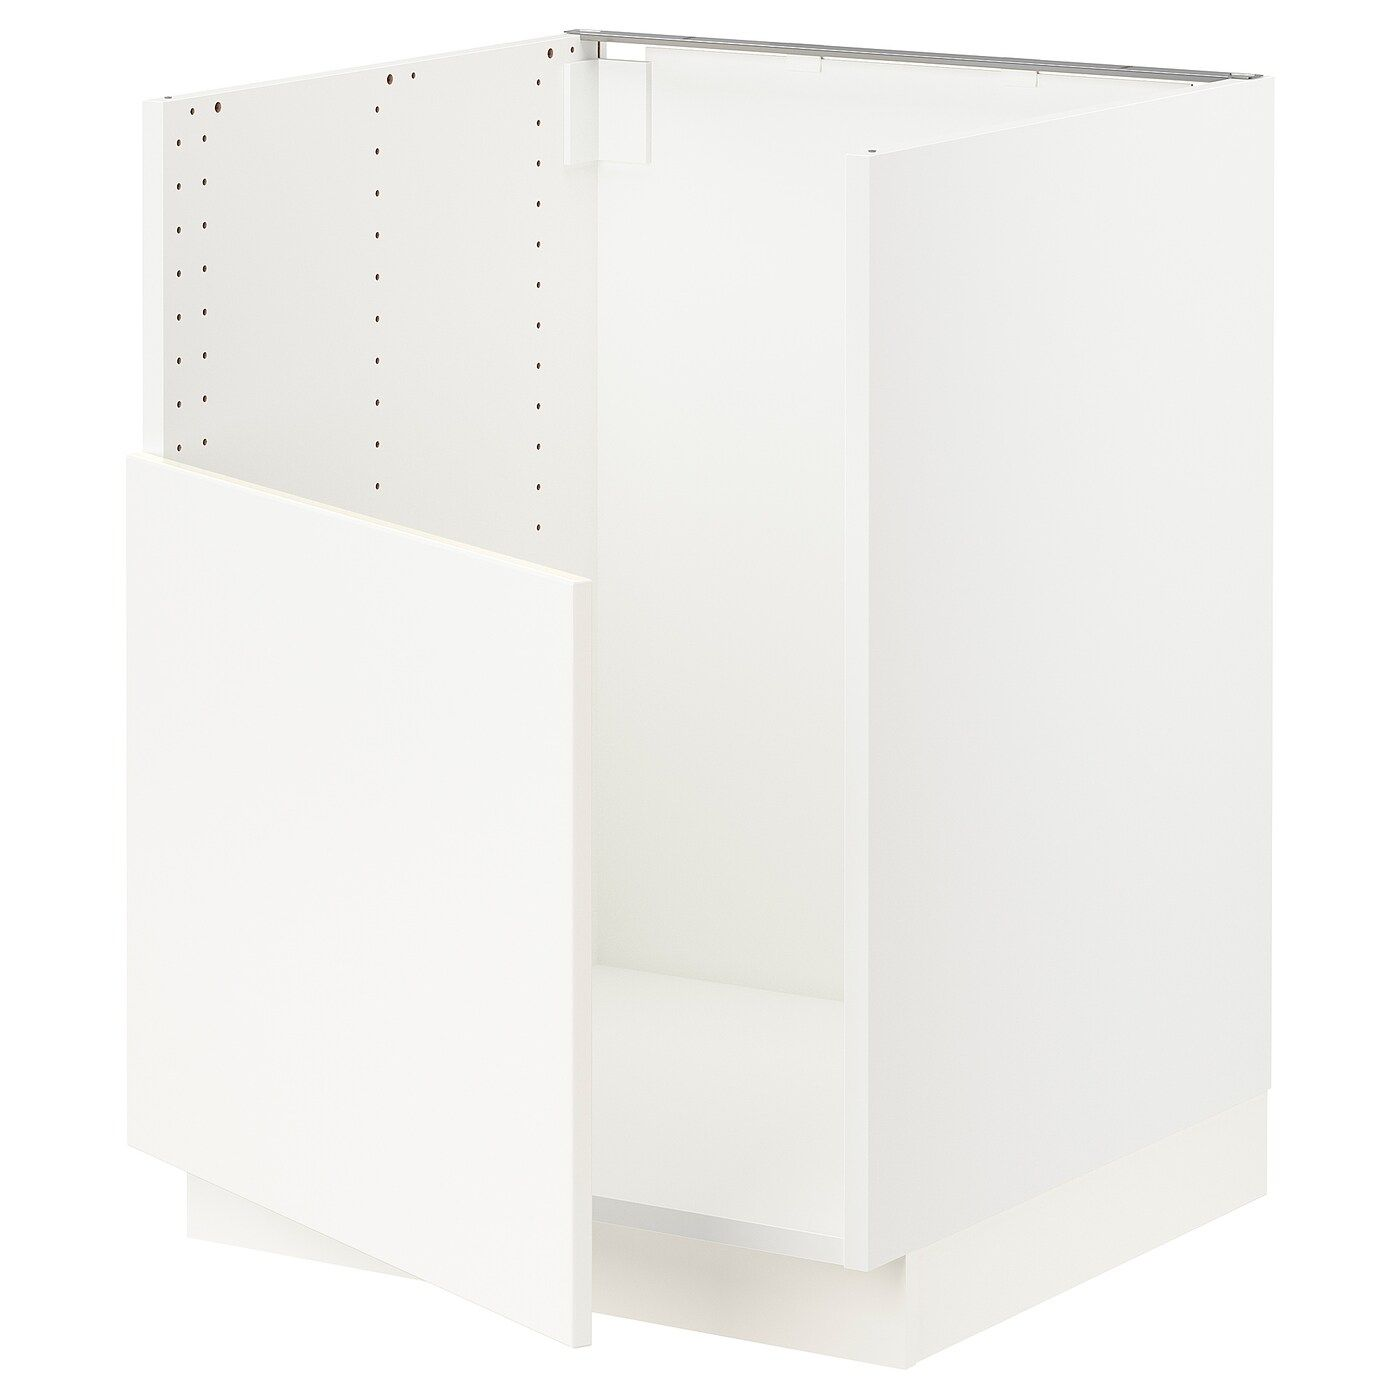 Ikea Sektion White Base Cabinet For Bredsjon Sink Frame Colour Base Cabinets Kitchen Cabinets Fronts Ikea